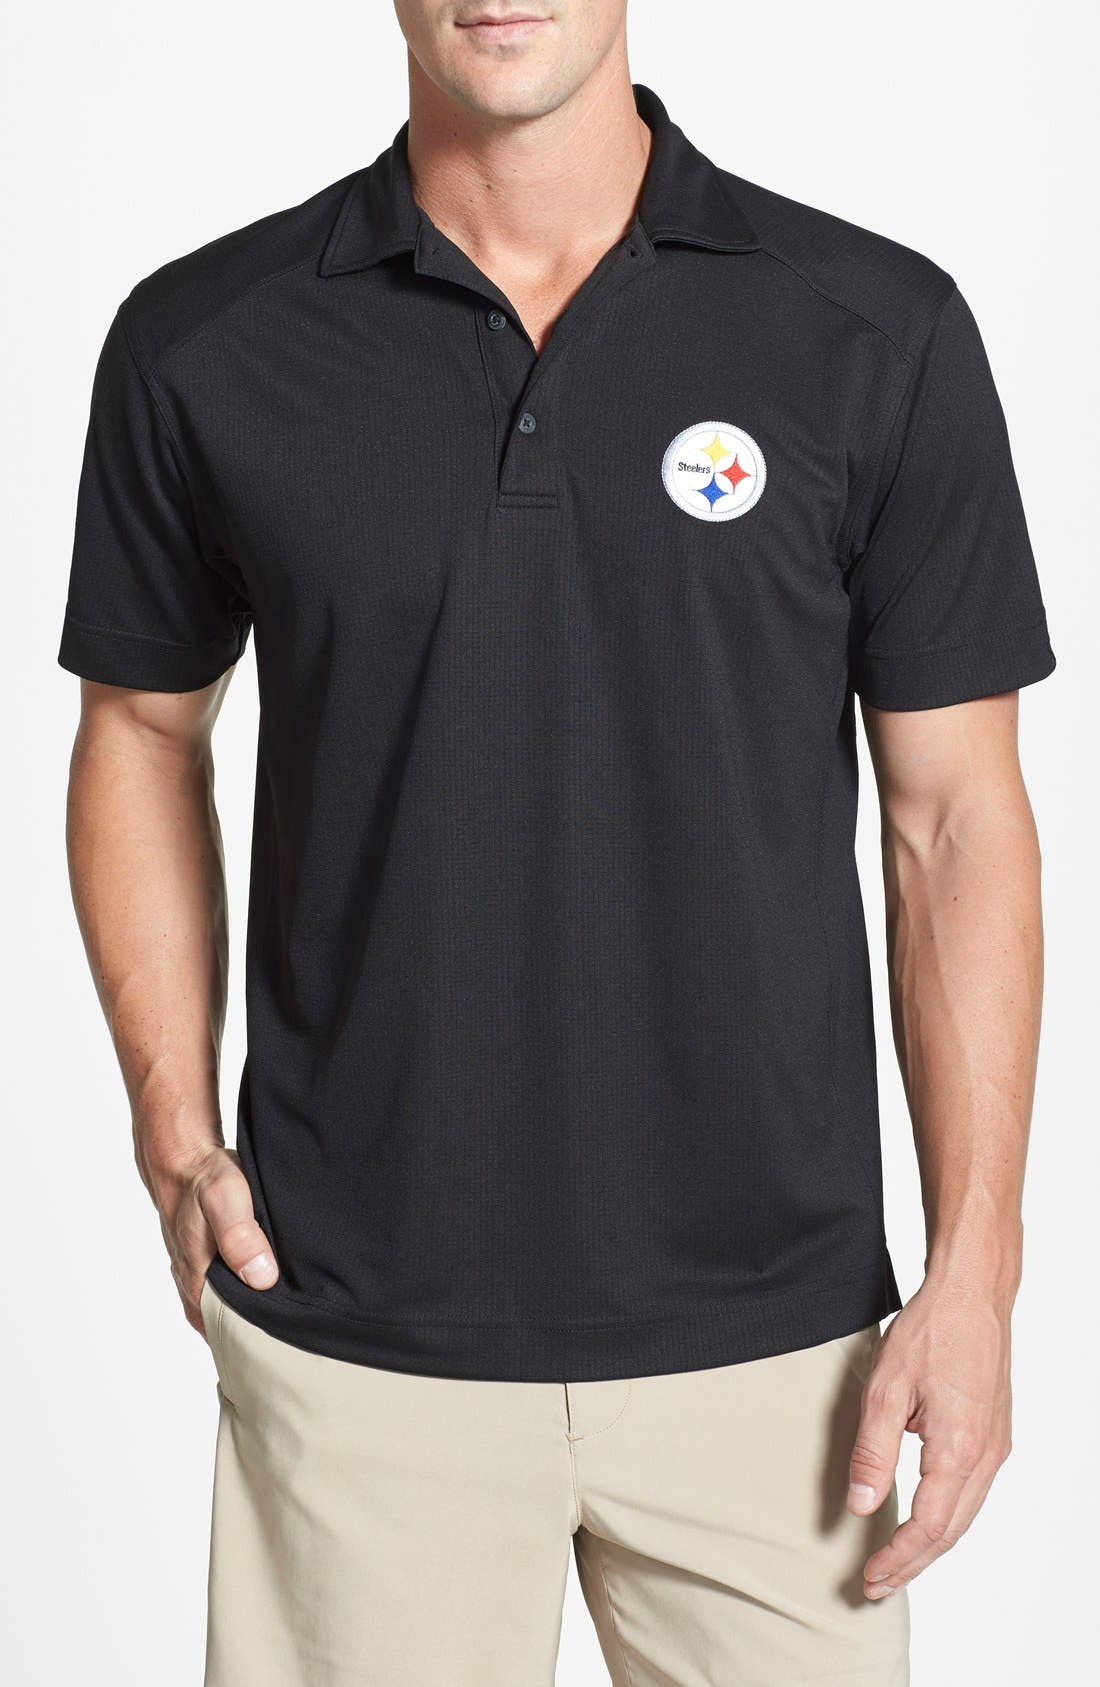 Pittsburgh Steelers - Genre DryTec Moisture Wicking Polo,                             Main thumbnail 1, color,                             001